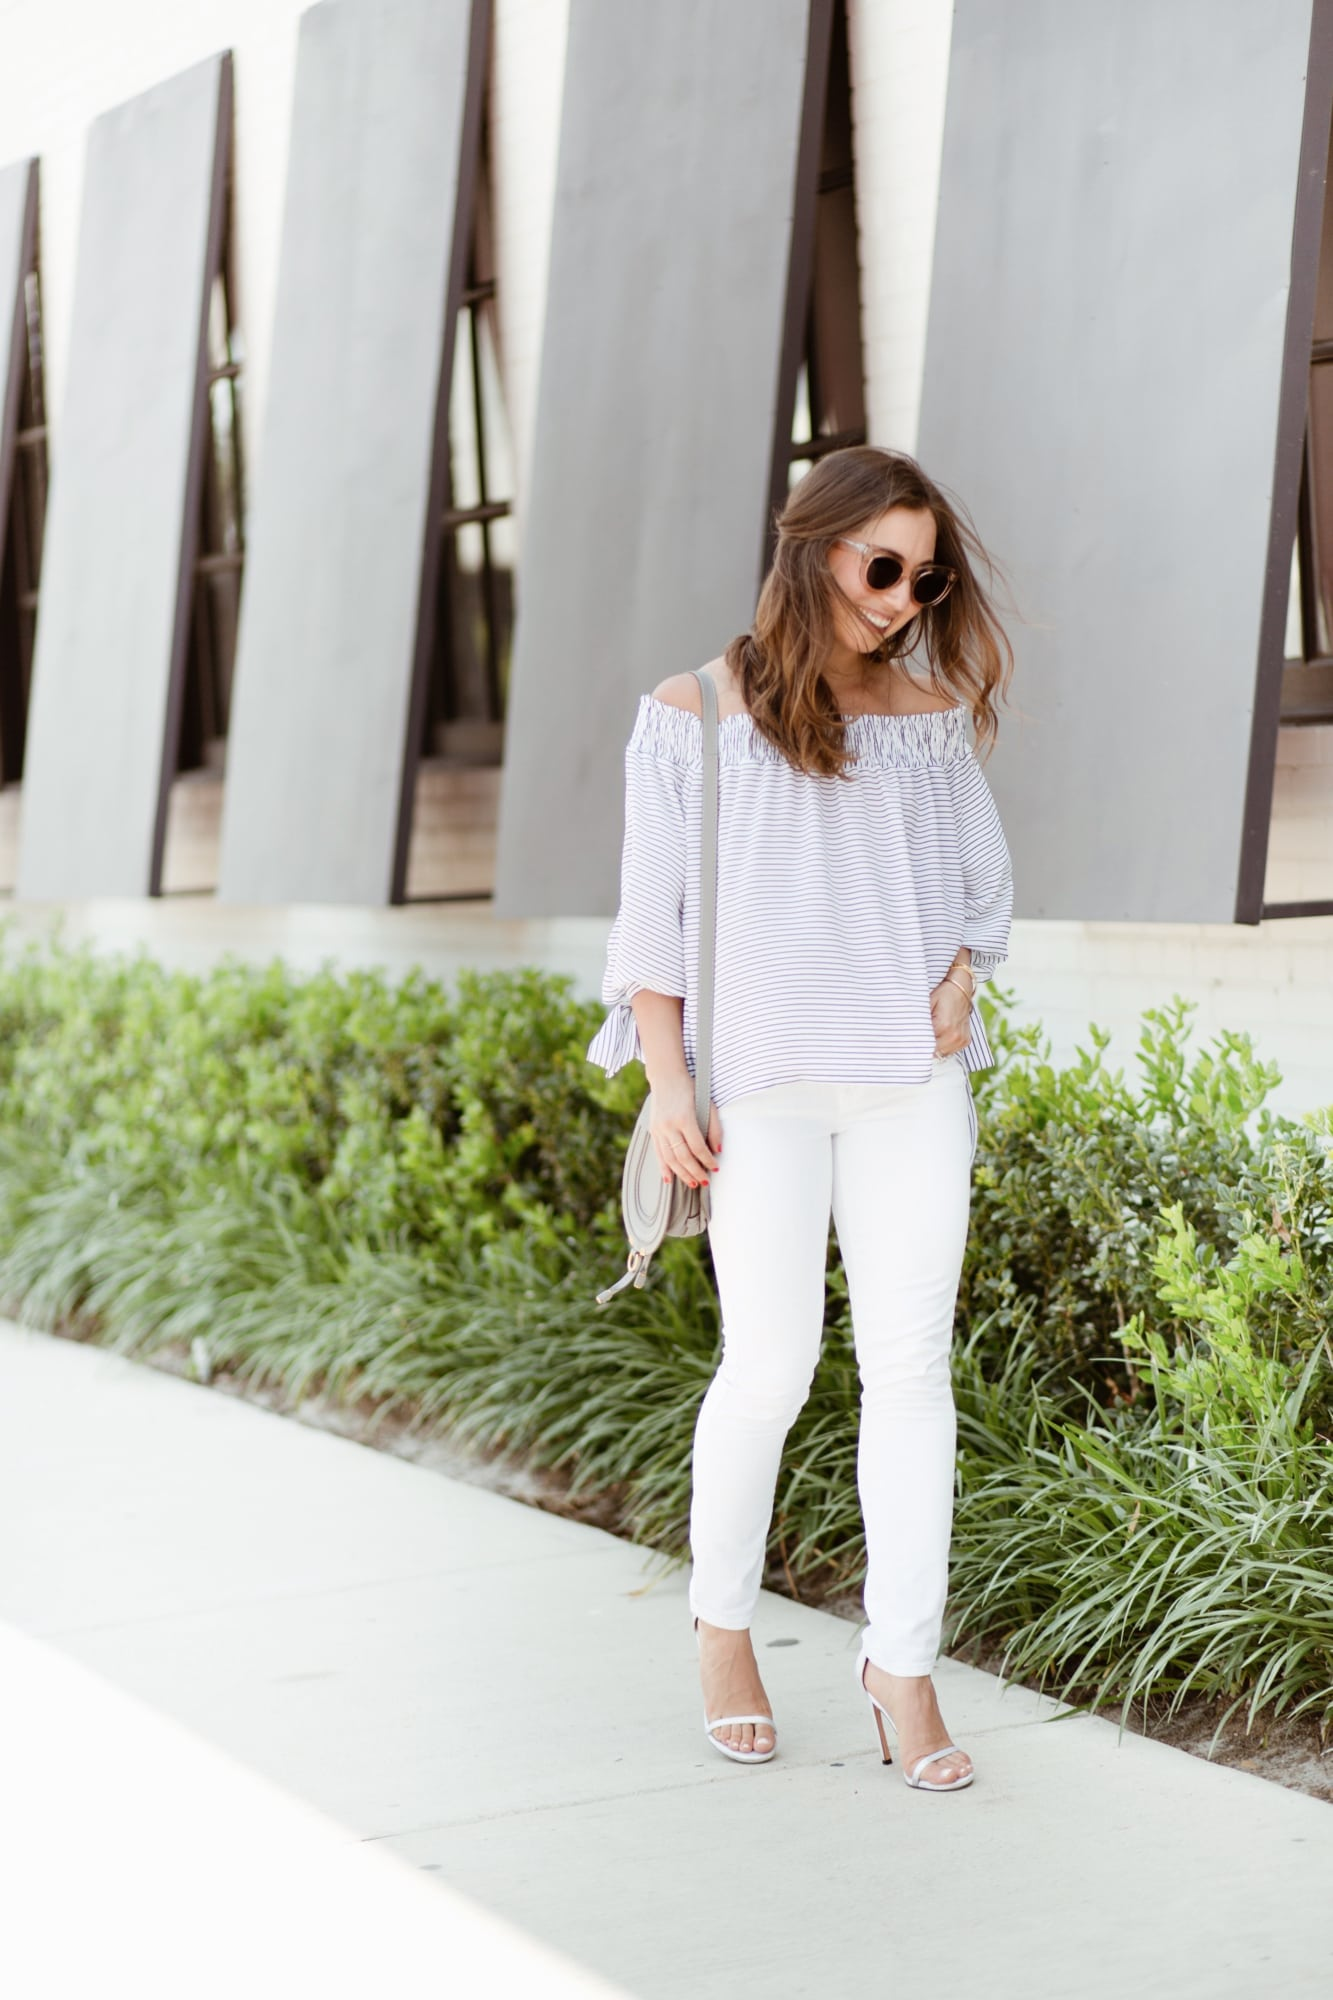 Off the Shoulder Top and Chloe Crossbody